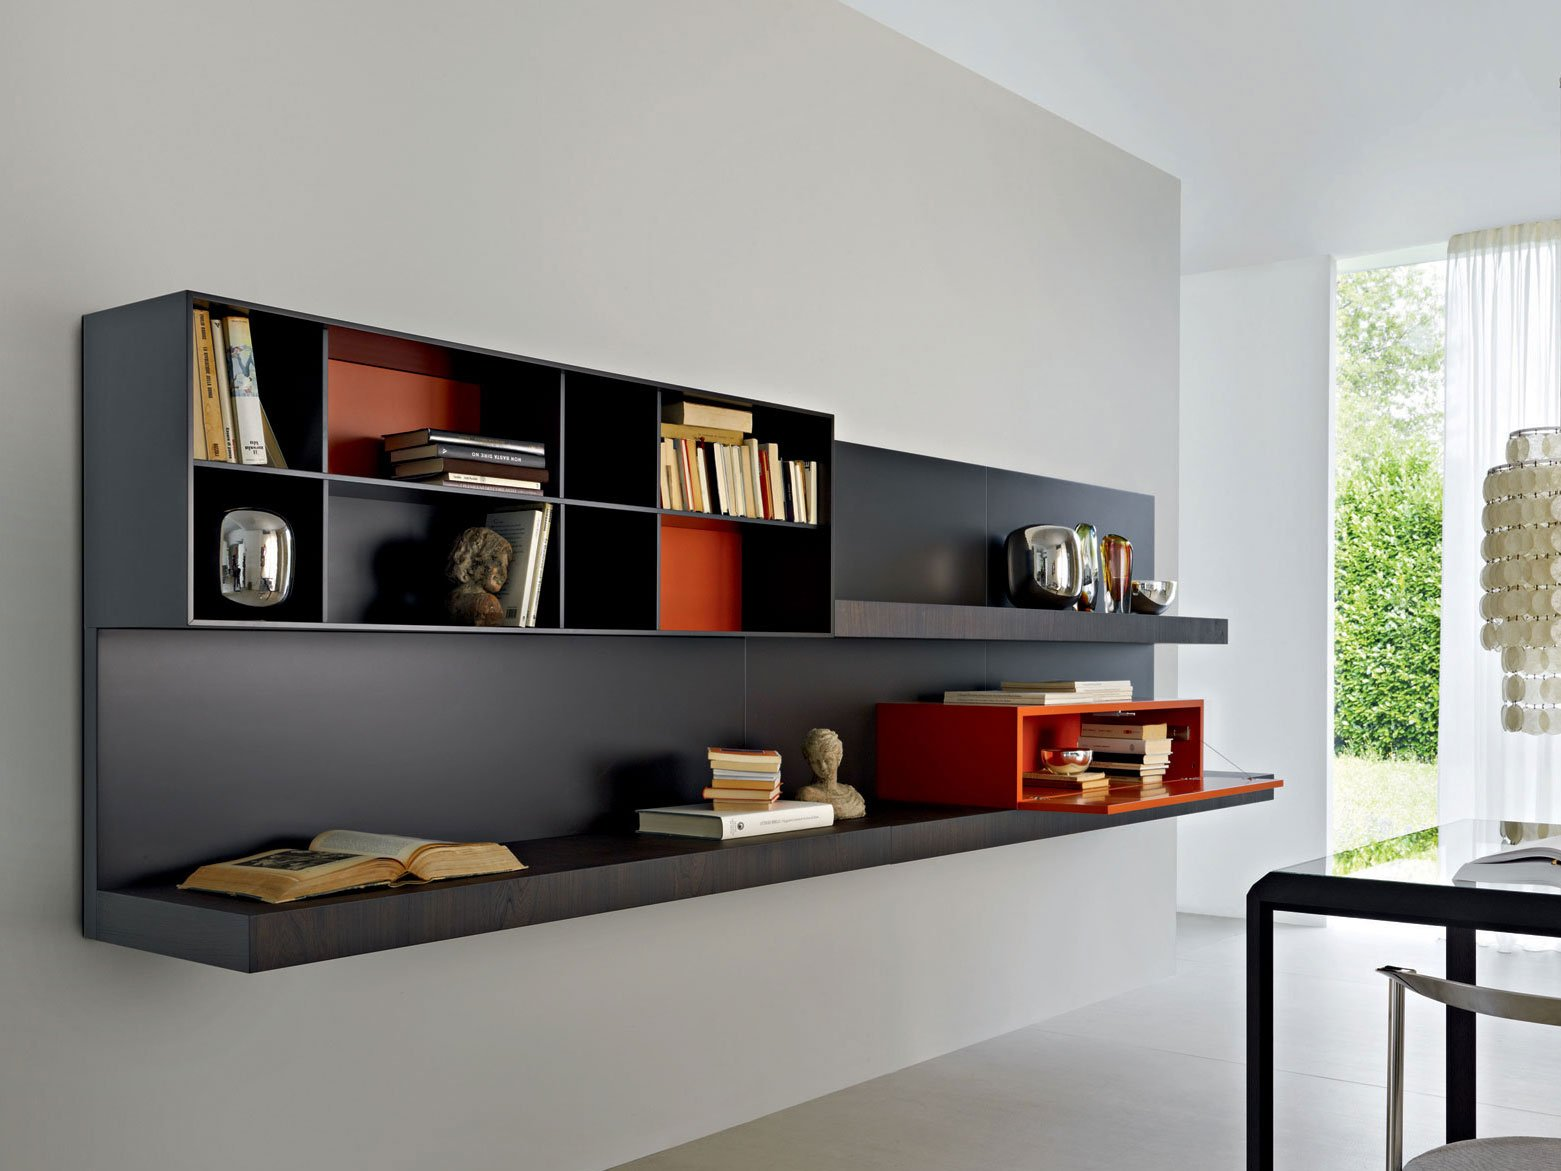 pass biblioth que suspendue by molteni c design nicola gallizia. Black Bedroom Furniture Sets. Home Design Ideas